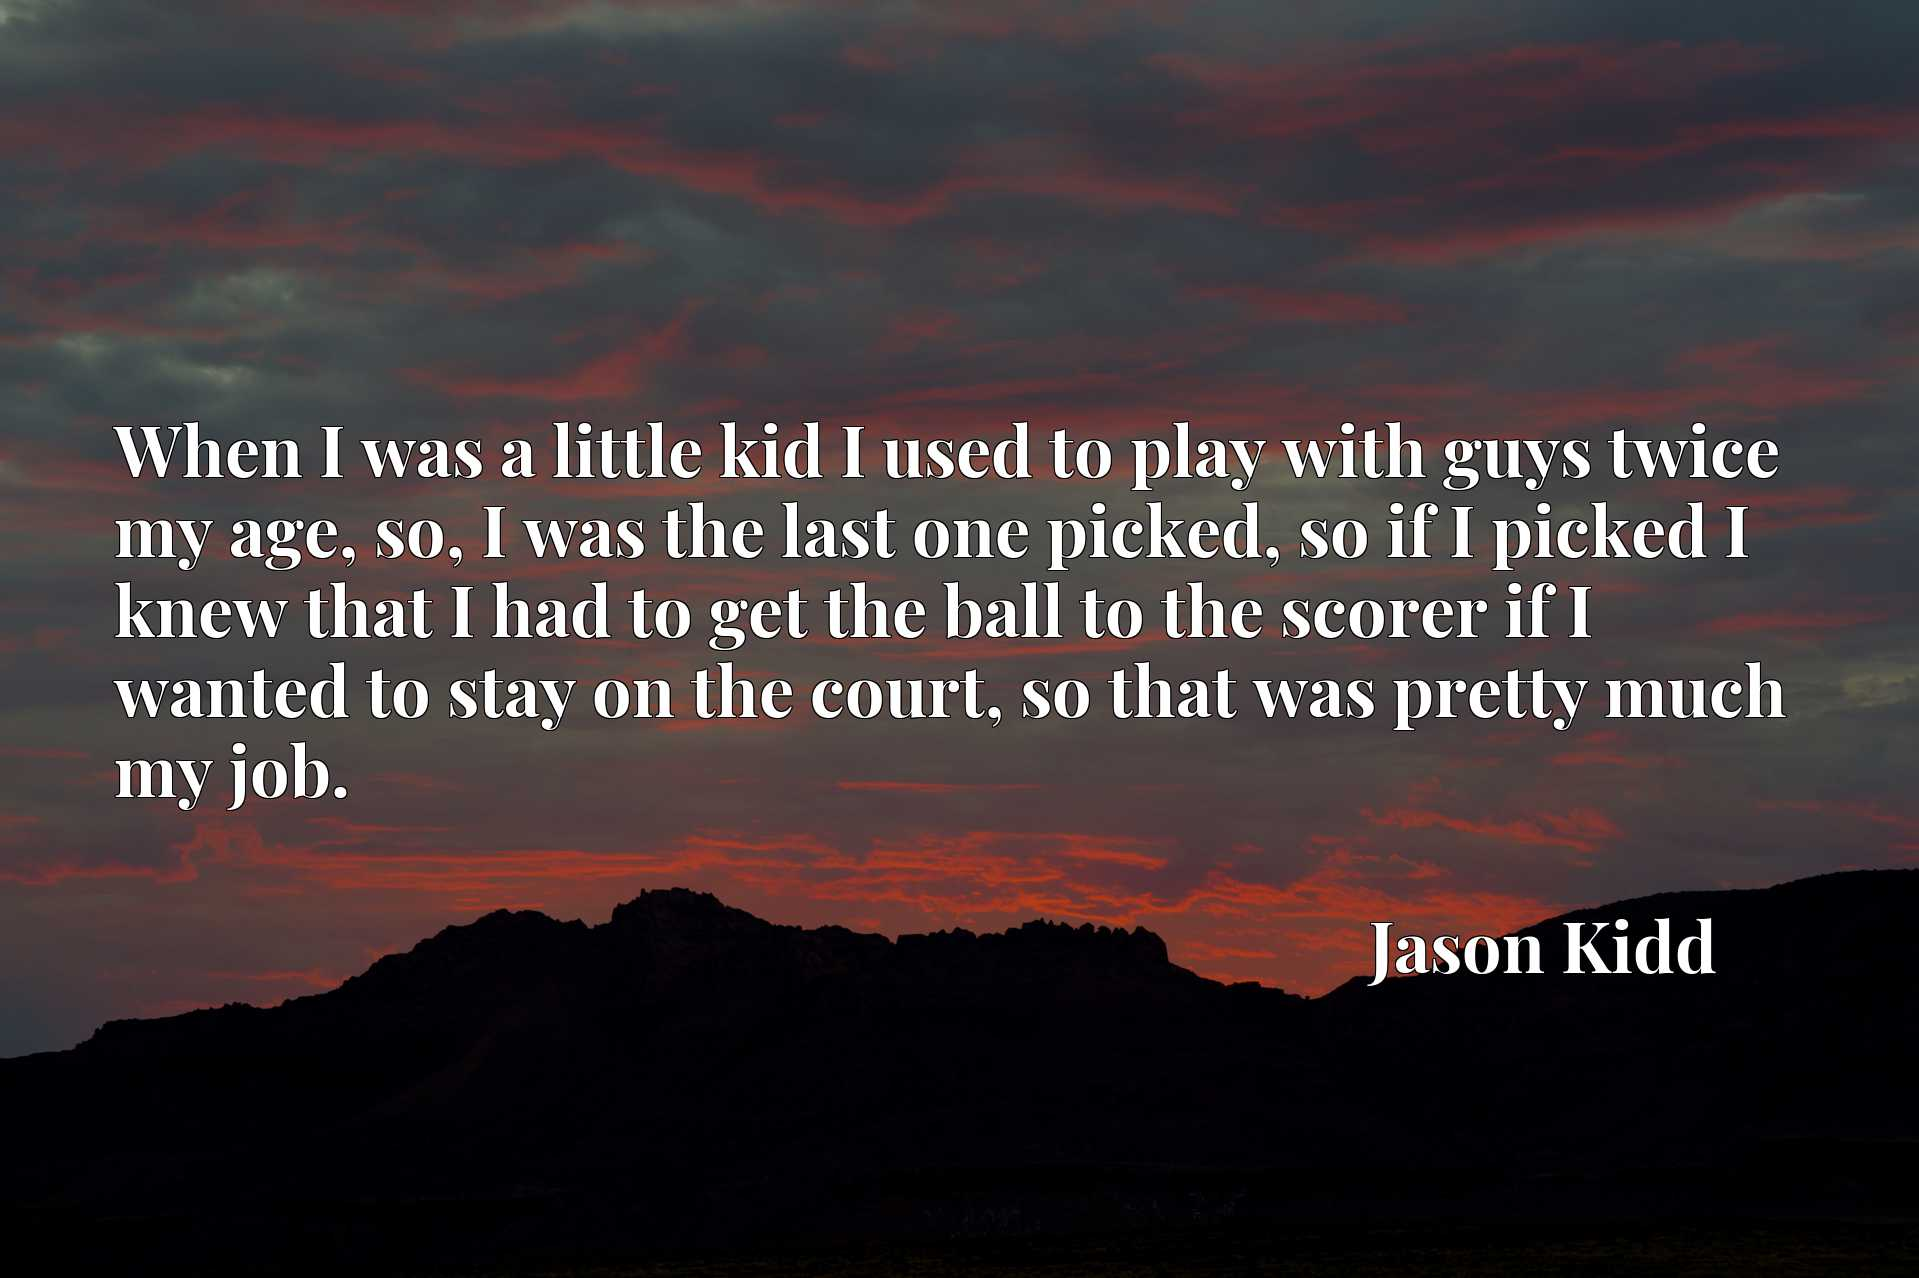 When I was a little kid I used to play with guys twice my age, so, I was the last one picked, so if I picked I knew that I had to get the ball to the scorer if I wanted to stay on the court, so that was pretty much my job.